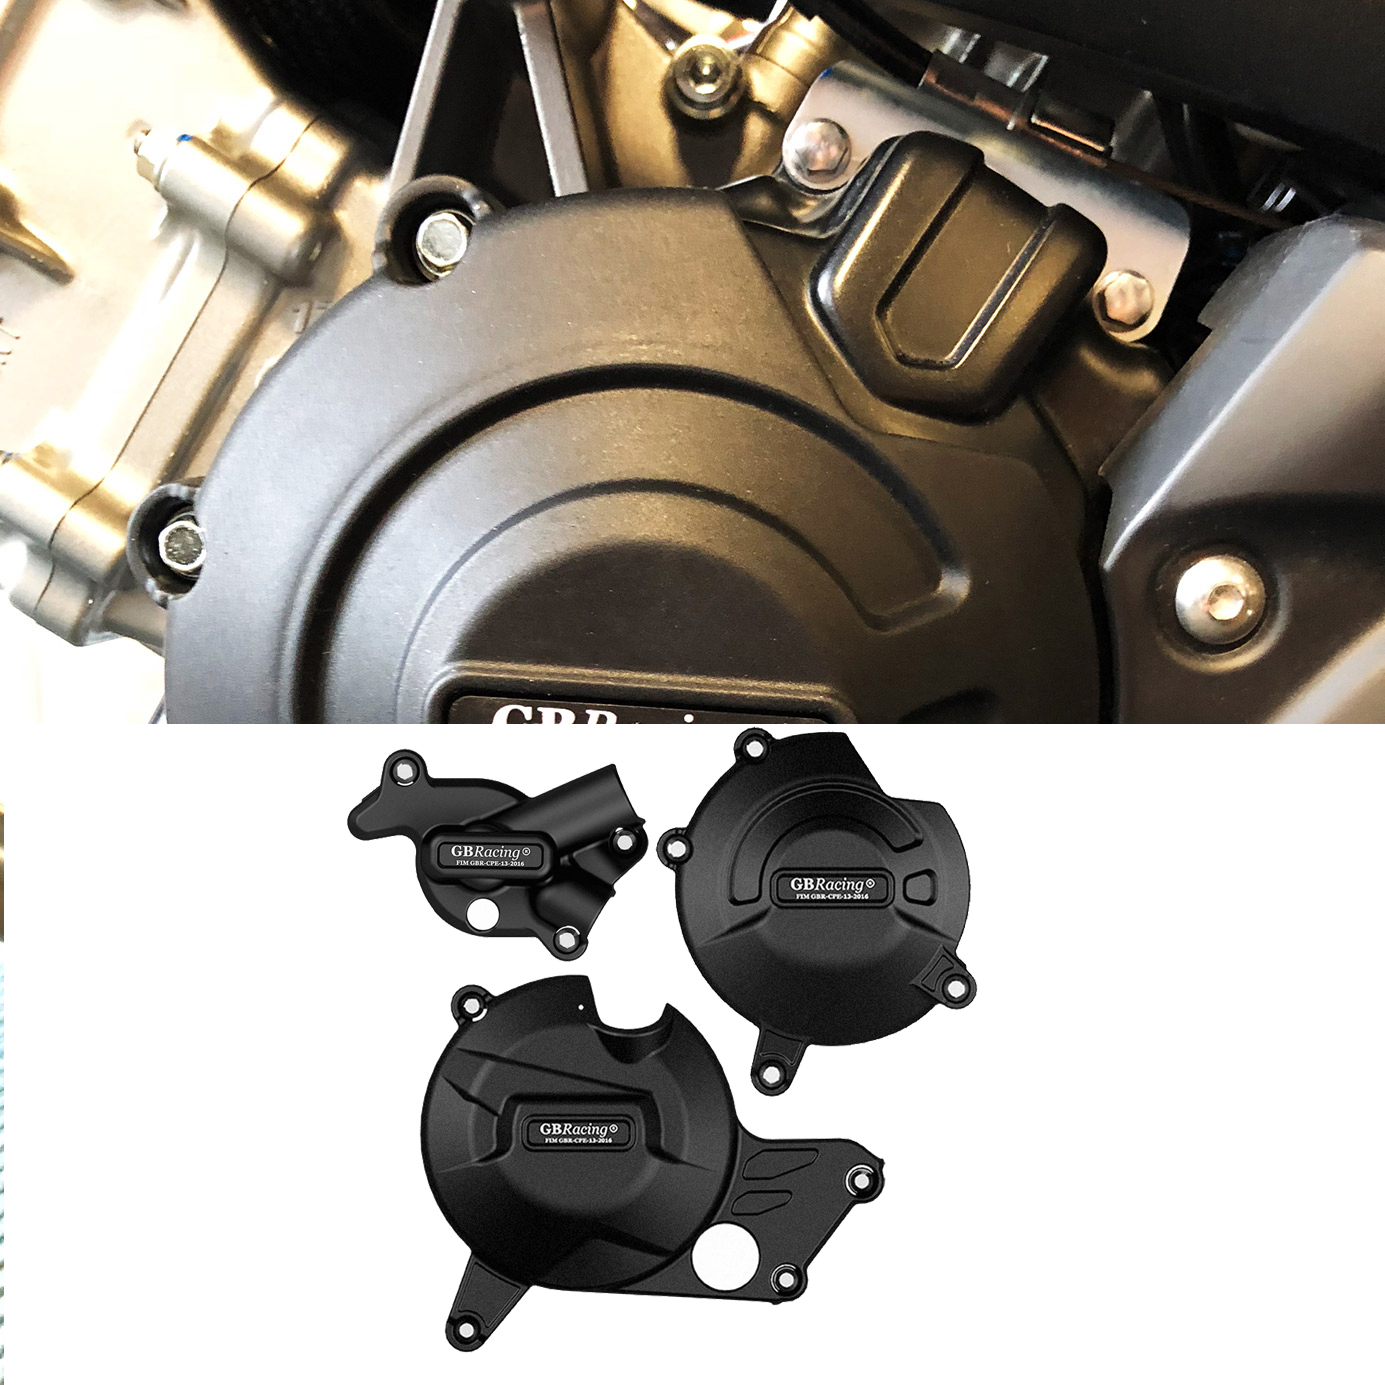 Motorcycle Secondary Engine Cover Set Case for GBRaing for Suzuki SV650 2015-2019